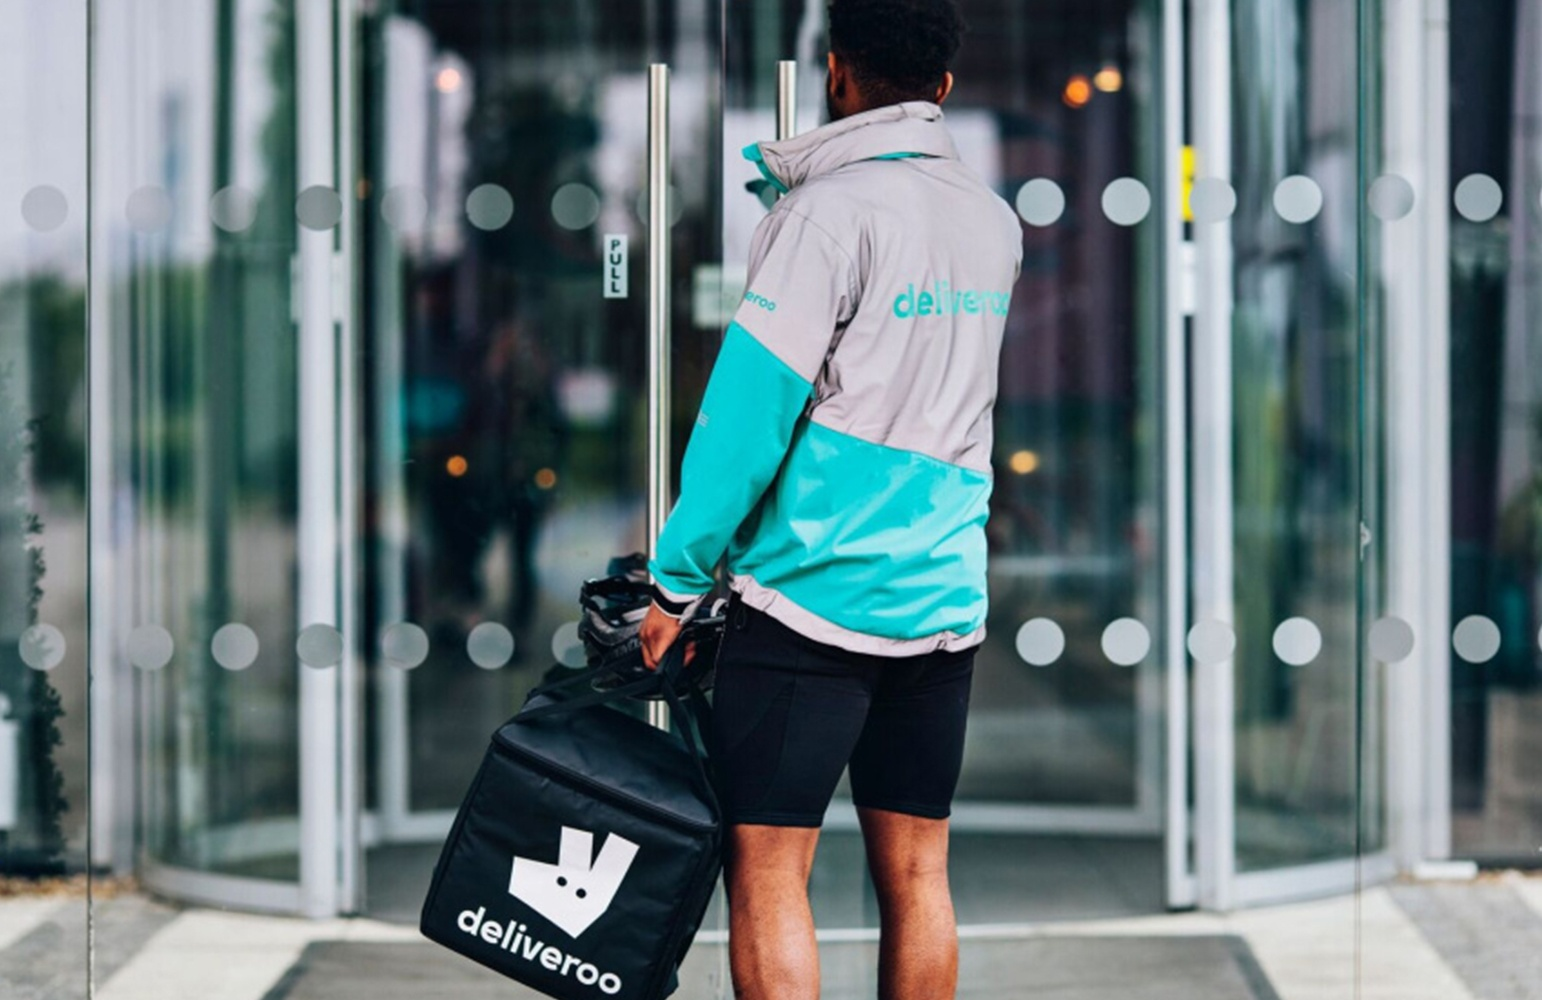 Deliveroo Rider Liability Insurance